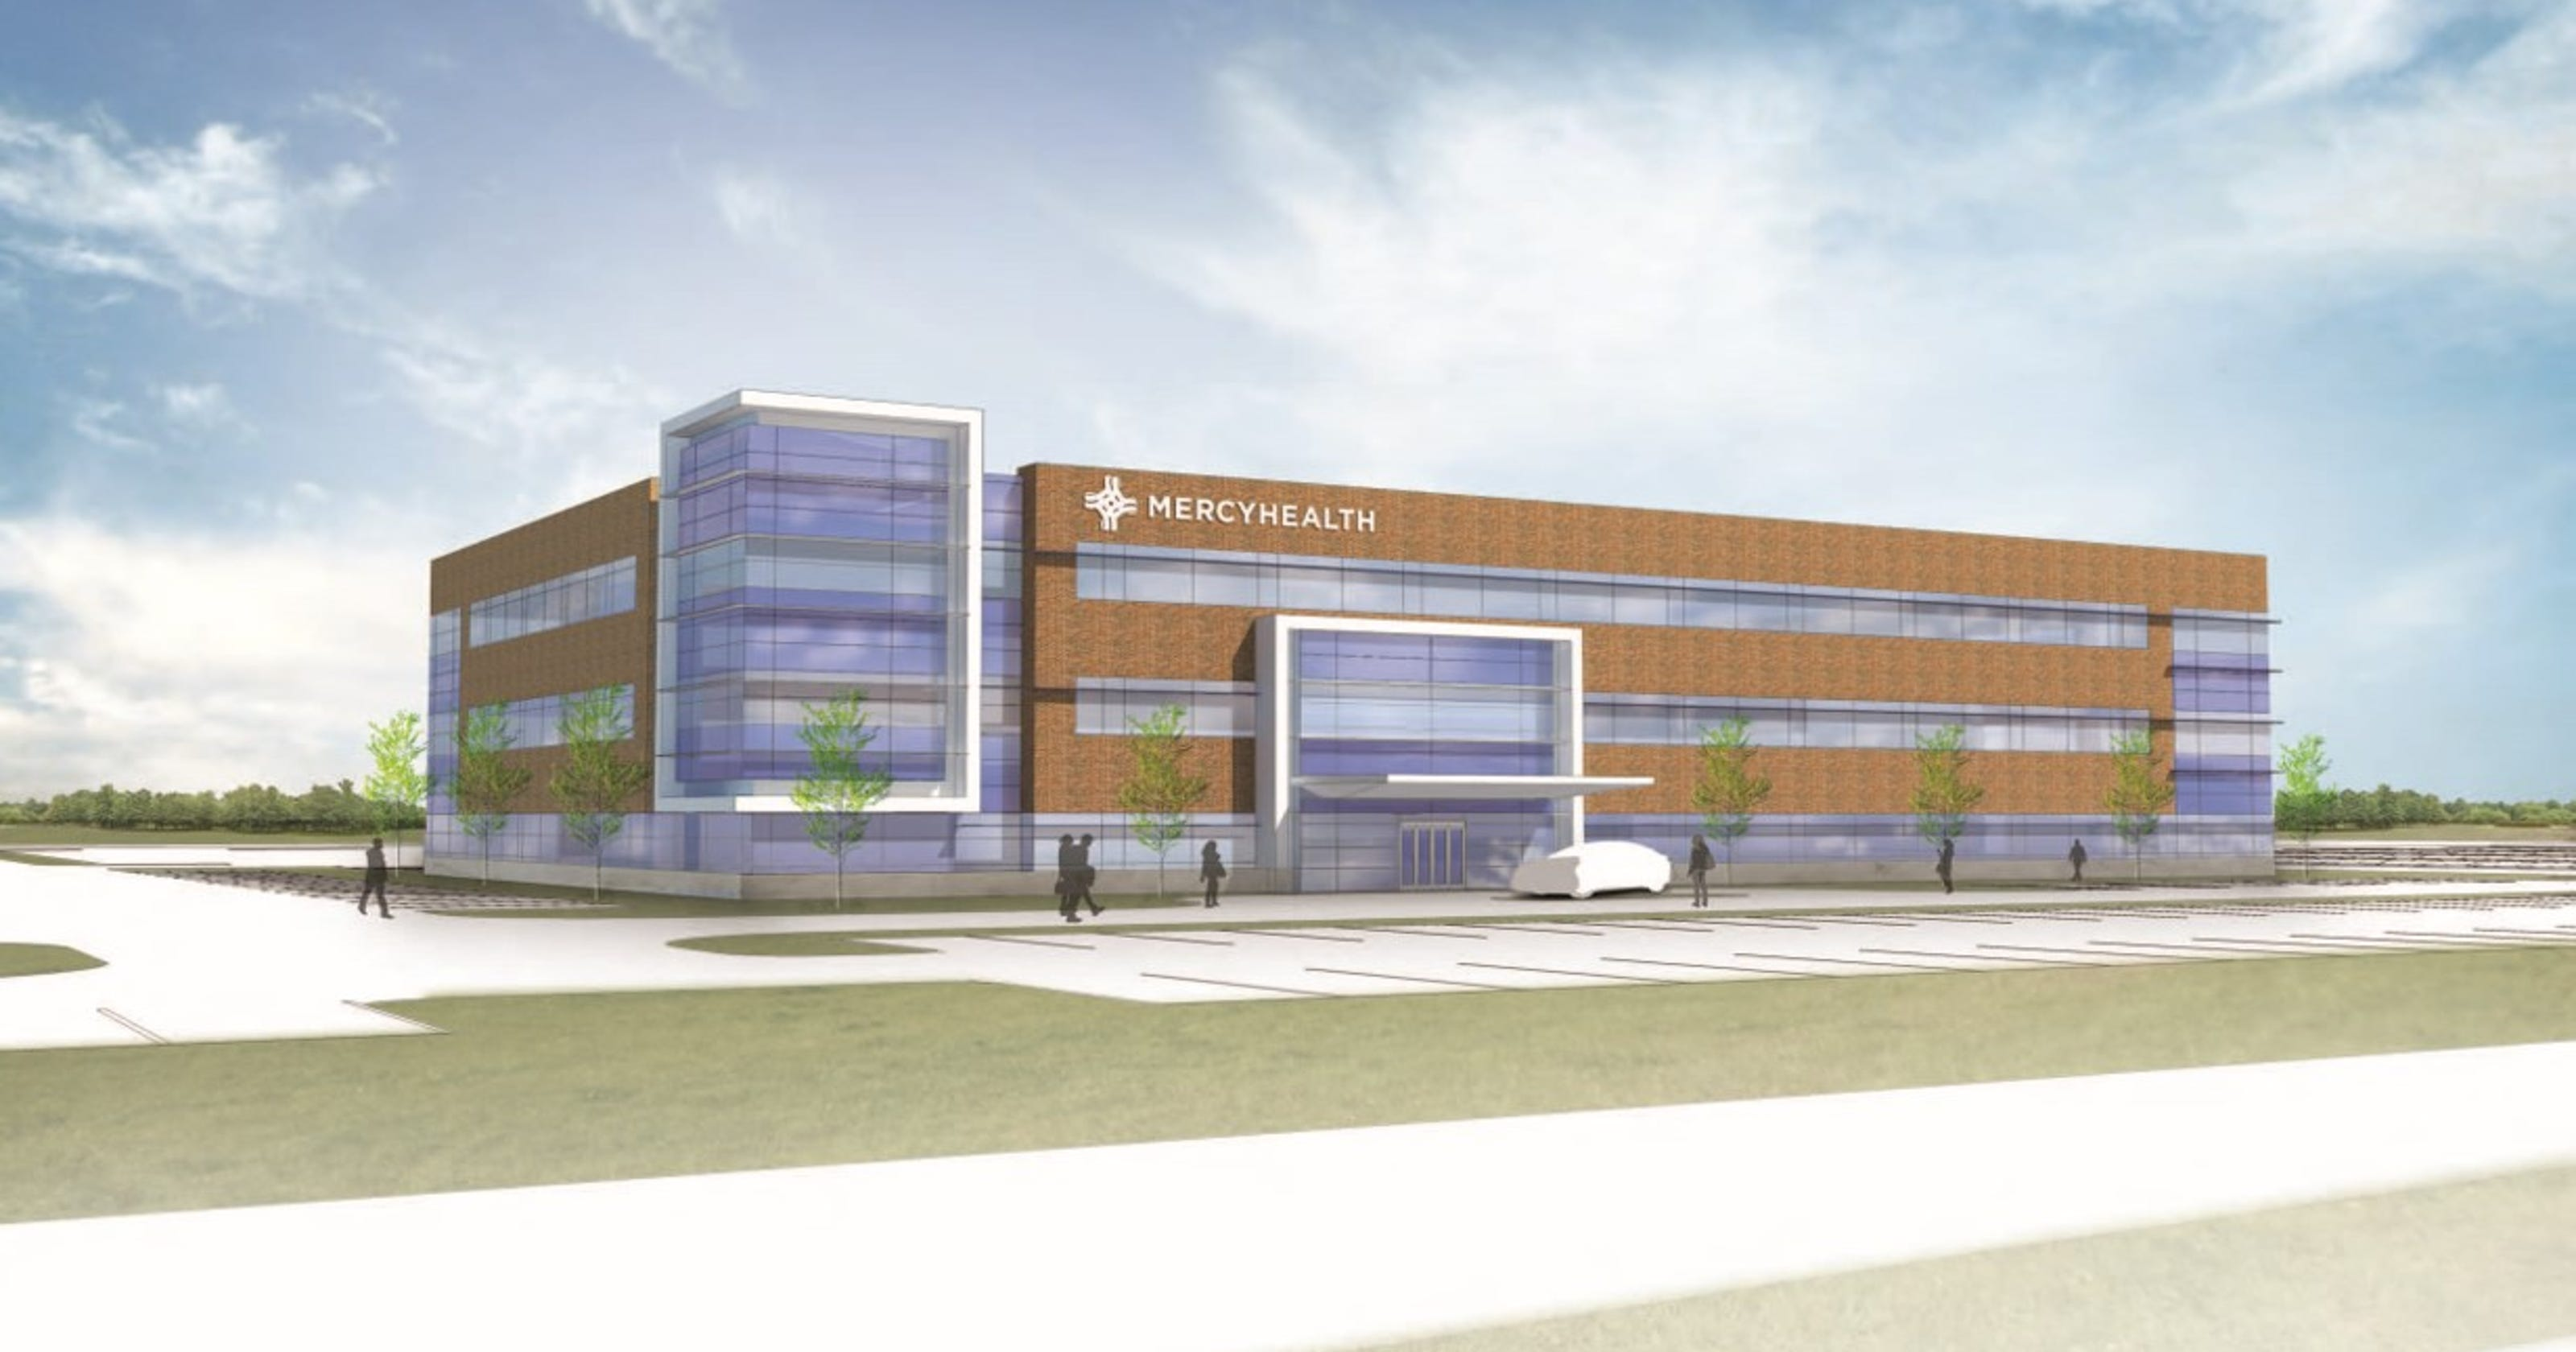 New Eastgate medical center to open in 2019